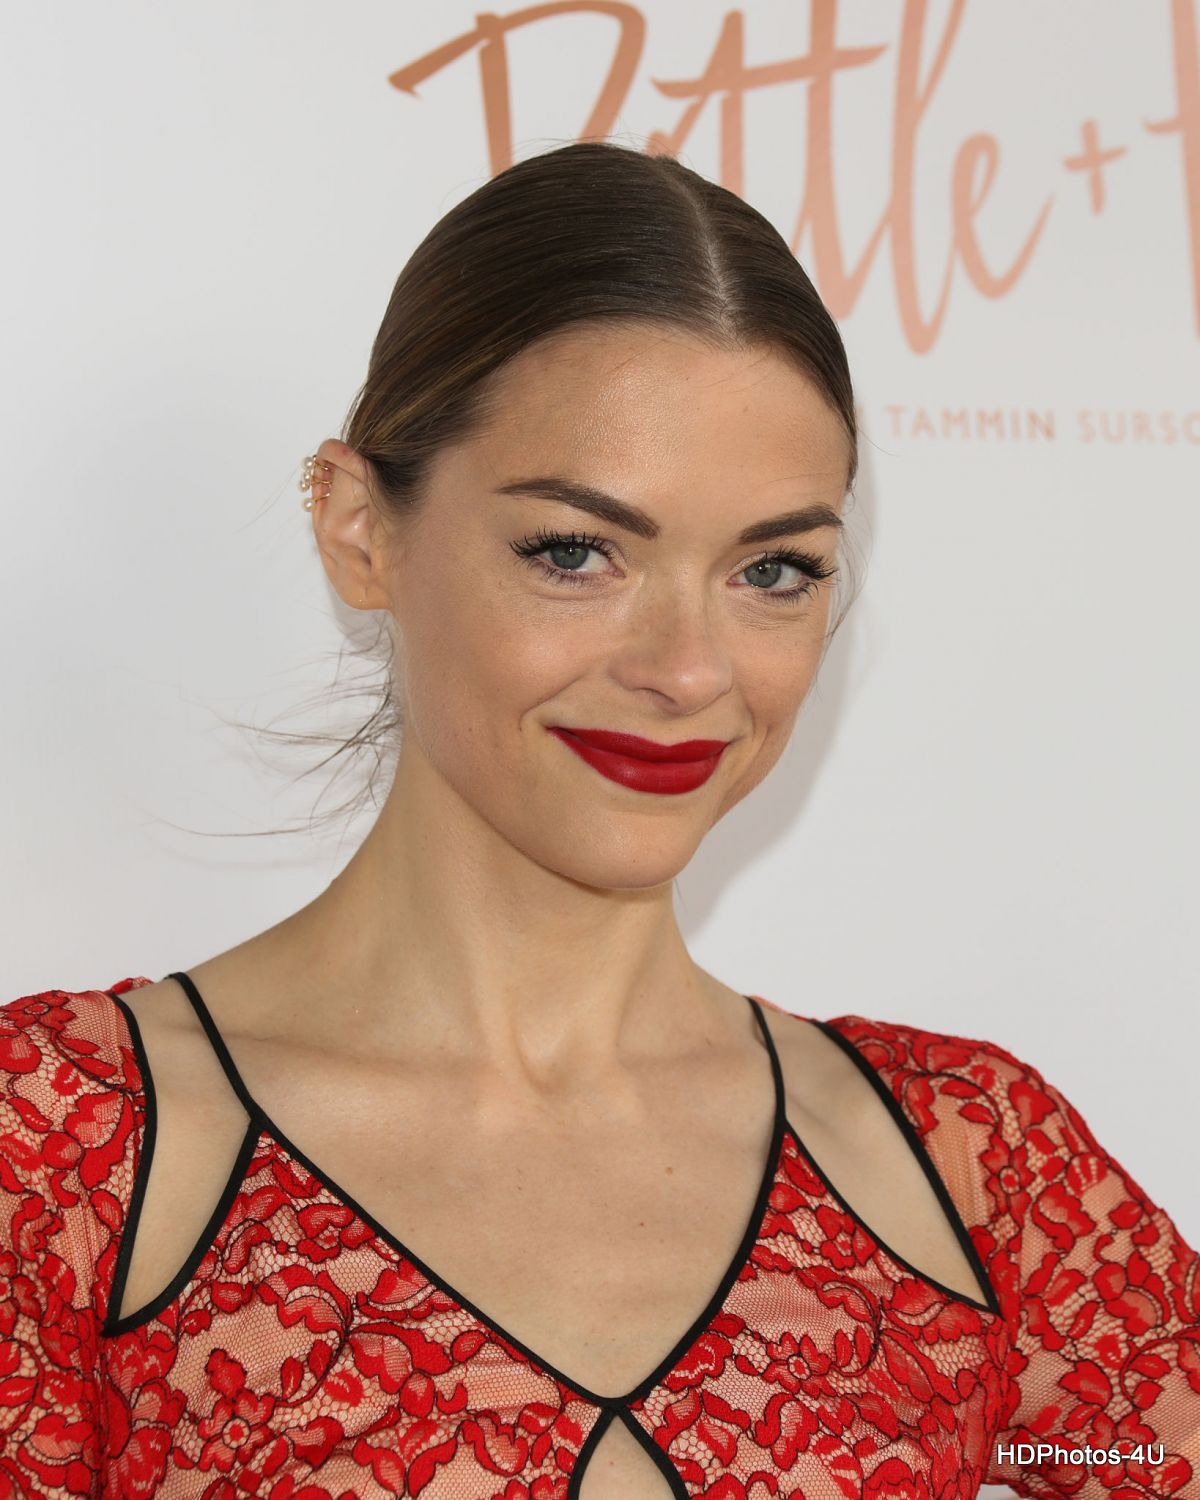 The Ever After actress HD Photos of Jaime King At Bottle And Heels Charity Event In Los Angeles